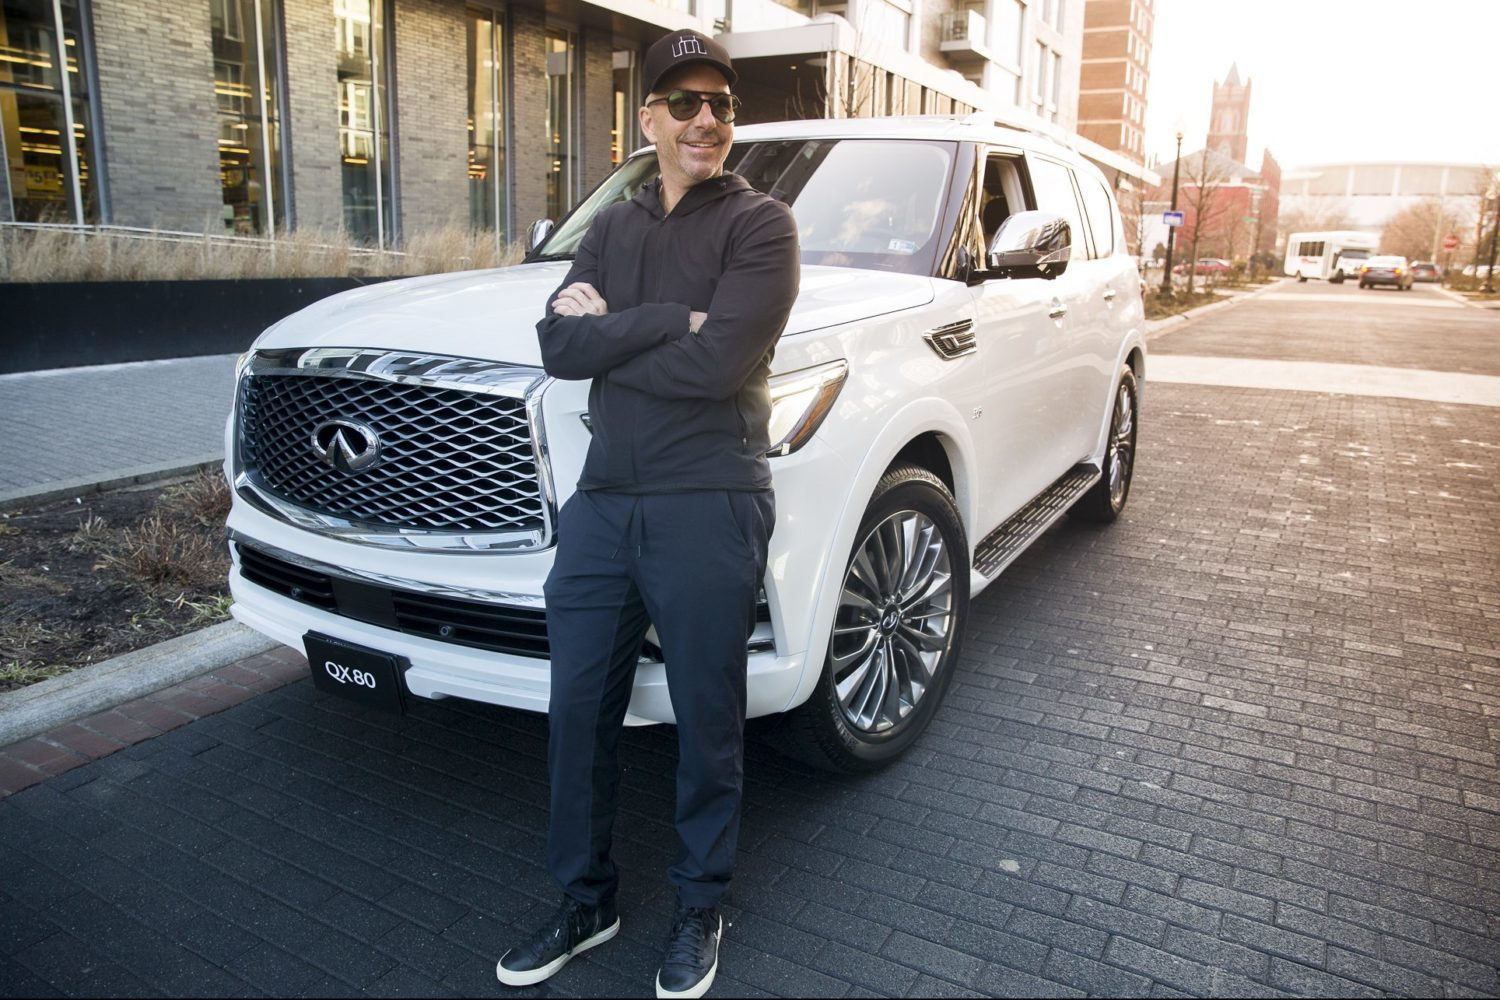 A day in the life of makeup artist Carl Ray, presented by Infiniti.